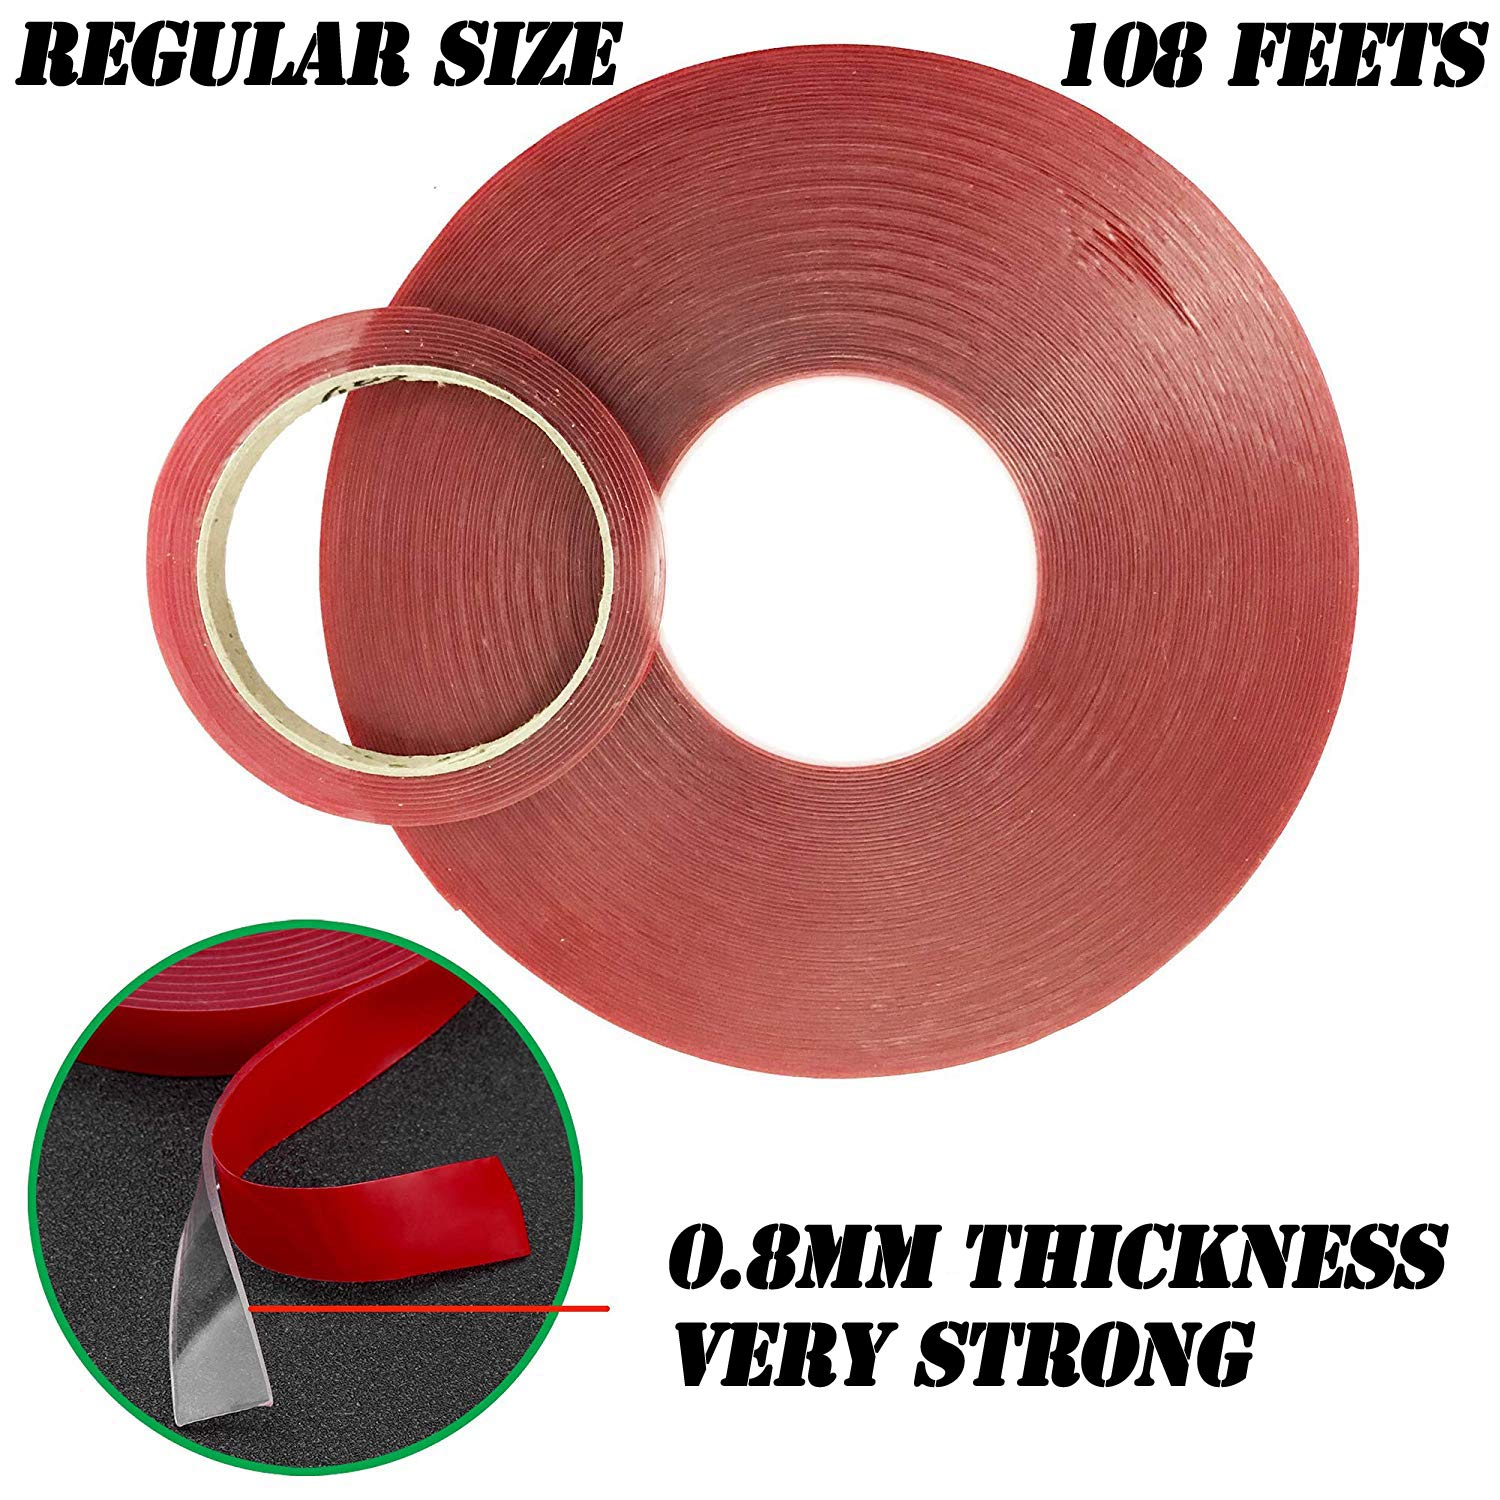 LLP Double Sided Heavy Duty Mounting Tape 6mm x 108 Feet Weatherproof, Holds Heavy Stuff in Cold & Hot Condition on Uneven Surface, Removable and Residue-Free, 0.8mm Thick Super Strong Adhesion